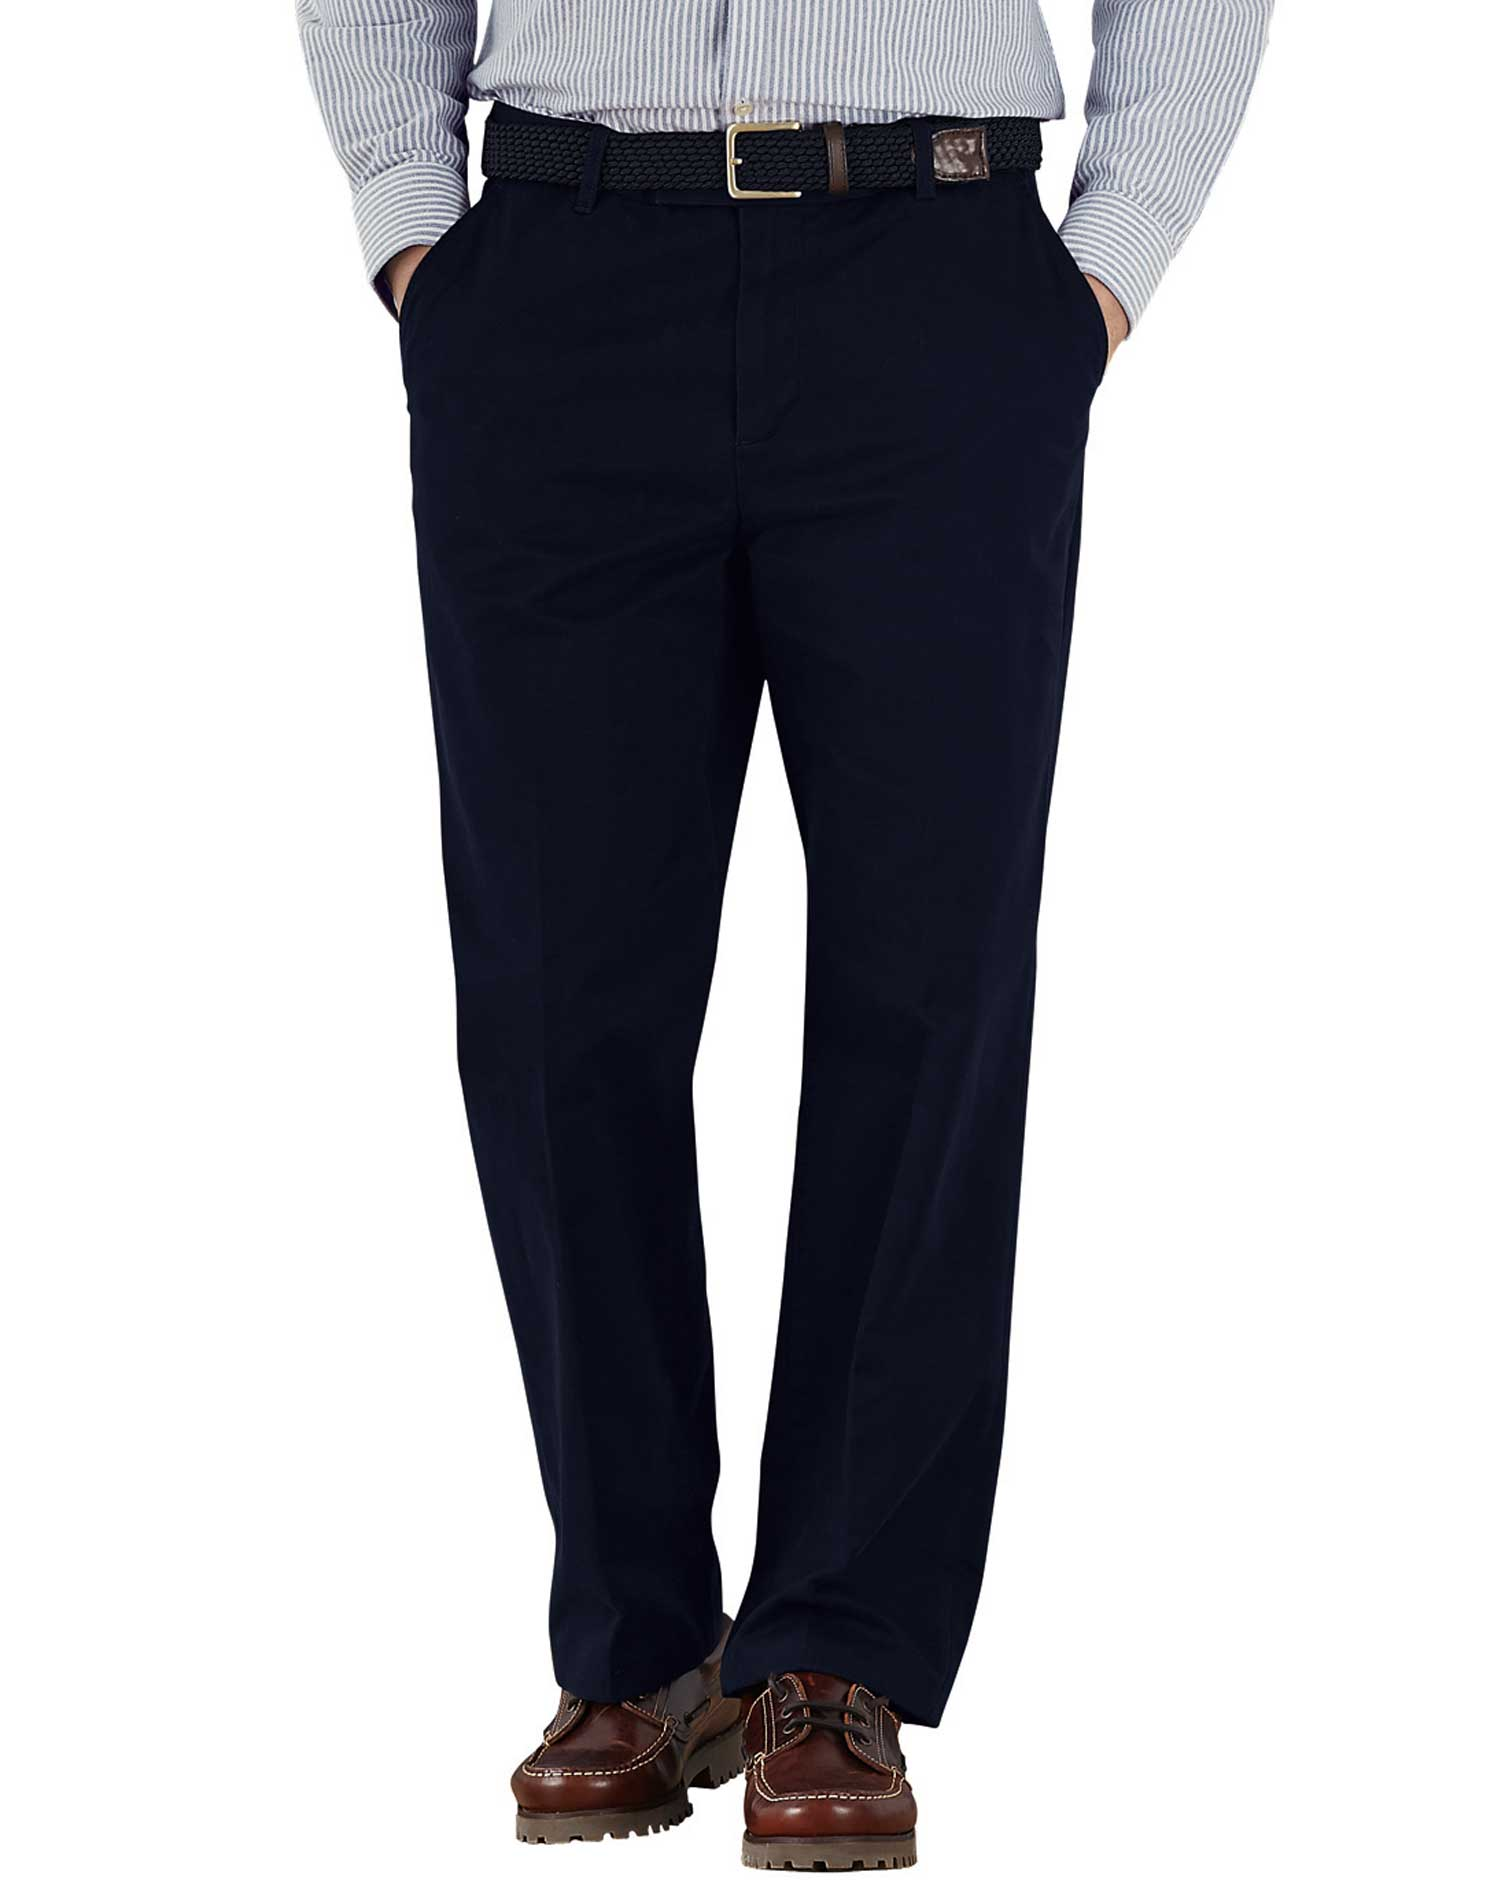 Navy Classic Fit Flat Front Weekend Cotton Chino Trousers Size W42 L29 by Charles Tyrwhitt